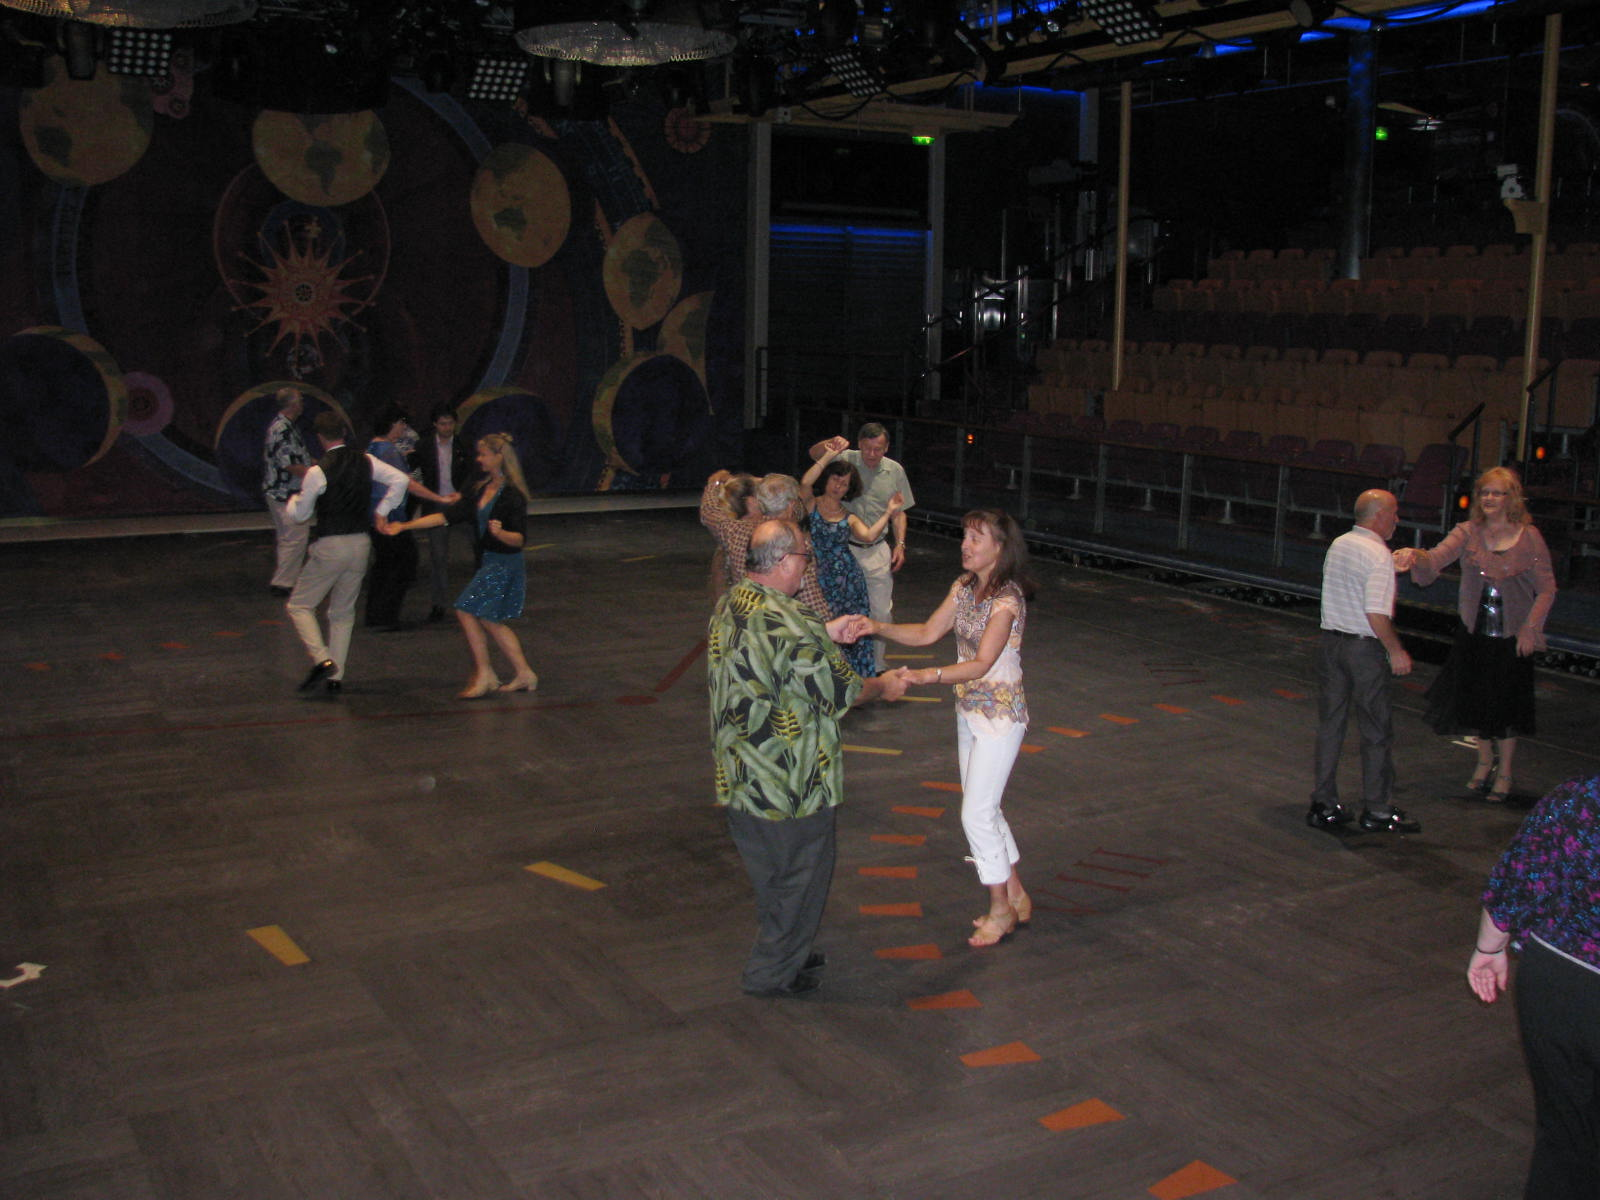 Enjoying the Large Dance Floor